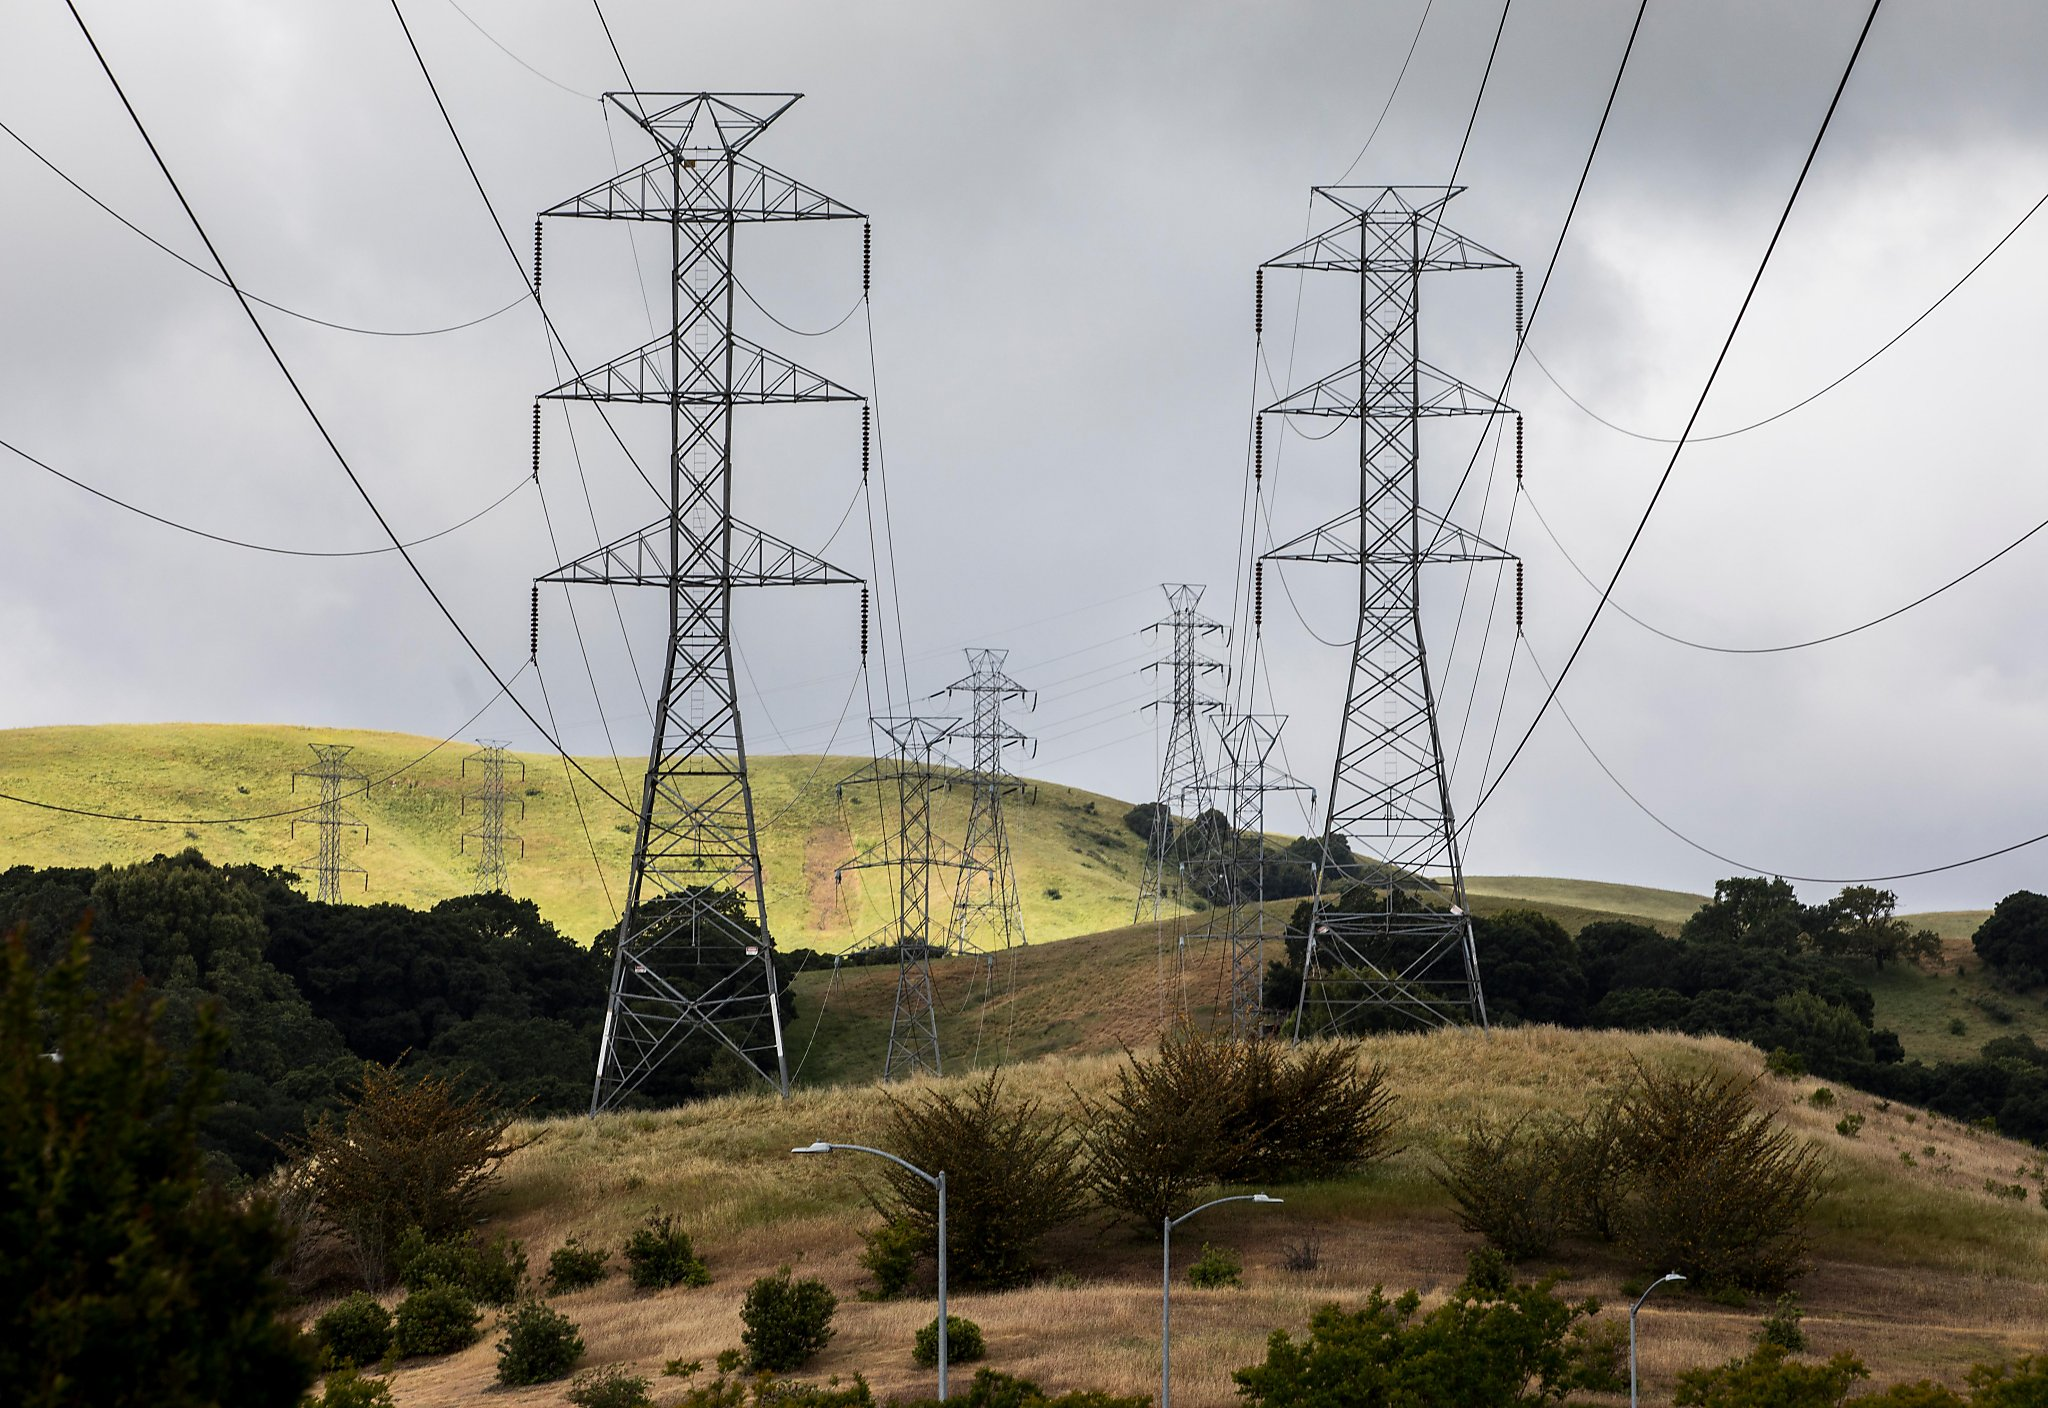 California's electricity prices are so high that researchers worry people won't ditch fossil fuel